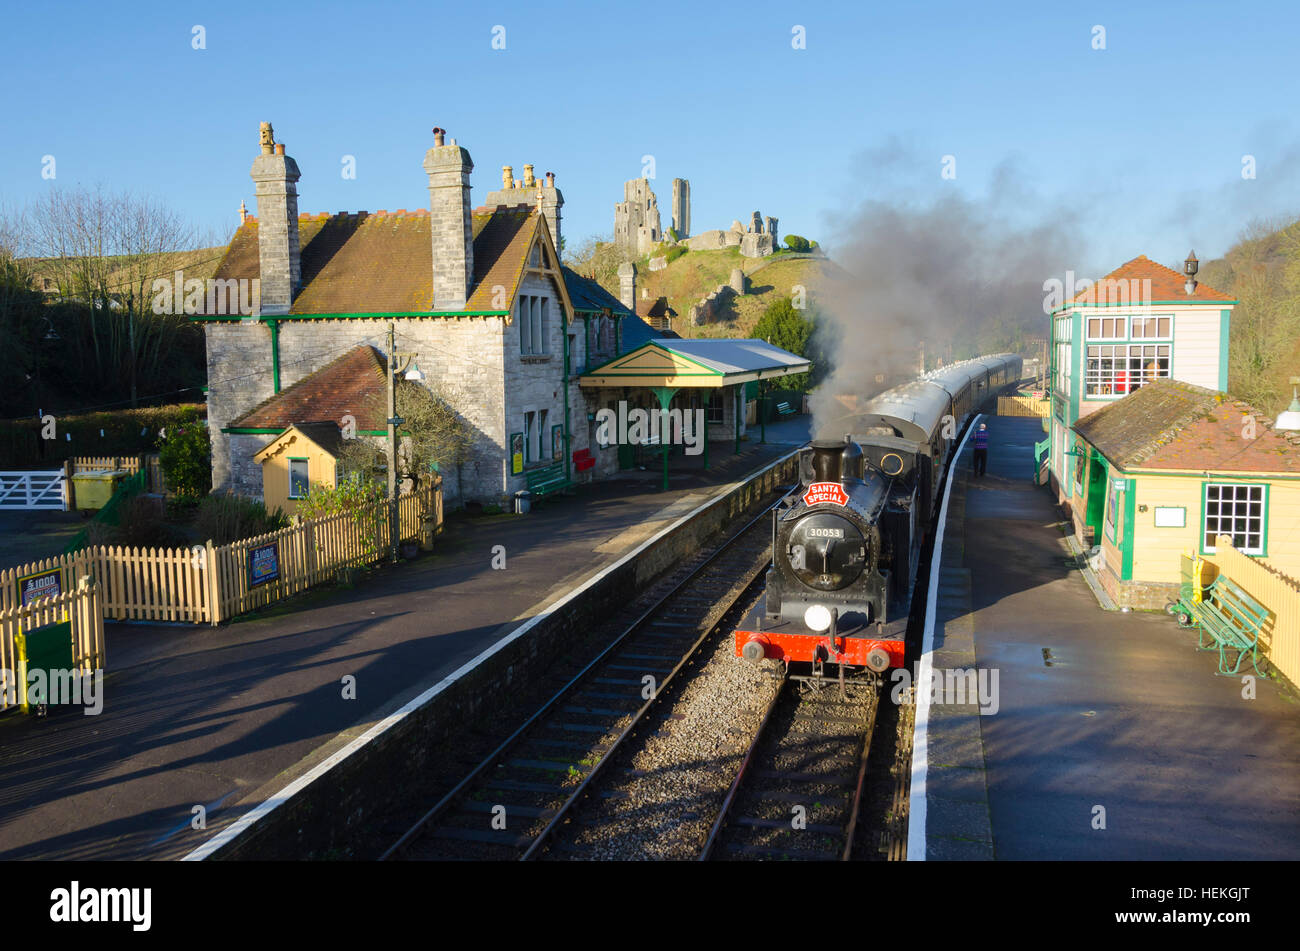 Corfe Castle, Dorset, UK.  22th December 2016.  The Swanage Railway Santa Special passing through Corfe Castle Station - Stock Image